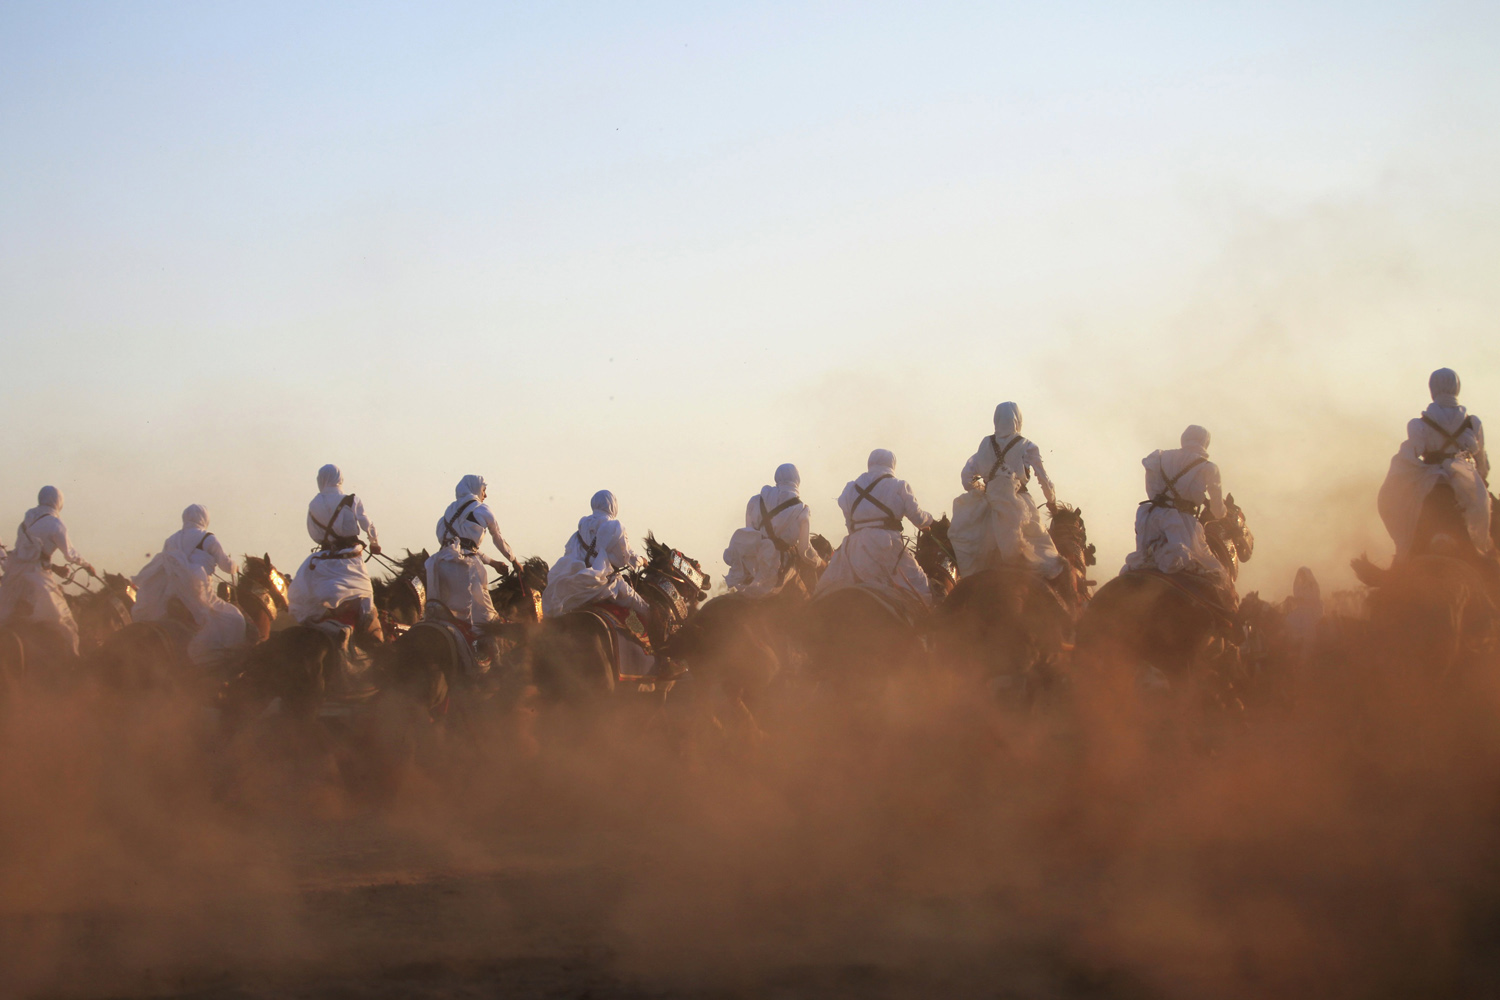 Aug. 9, 2013. Men, dressed in folk costumes, ride on horses during Eid al-Fitr, which marks the end of the holy month of Ramadan, in Benghazi, Libya.